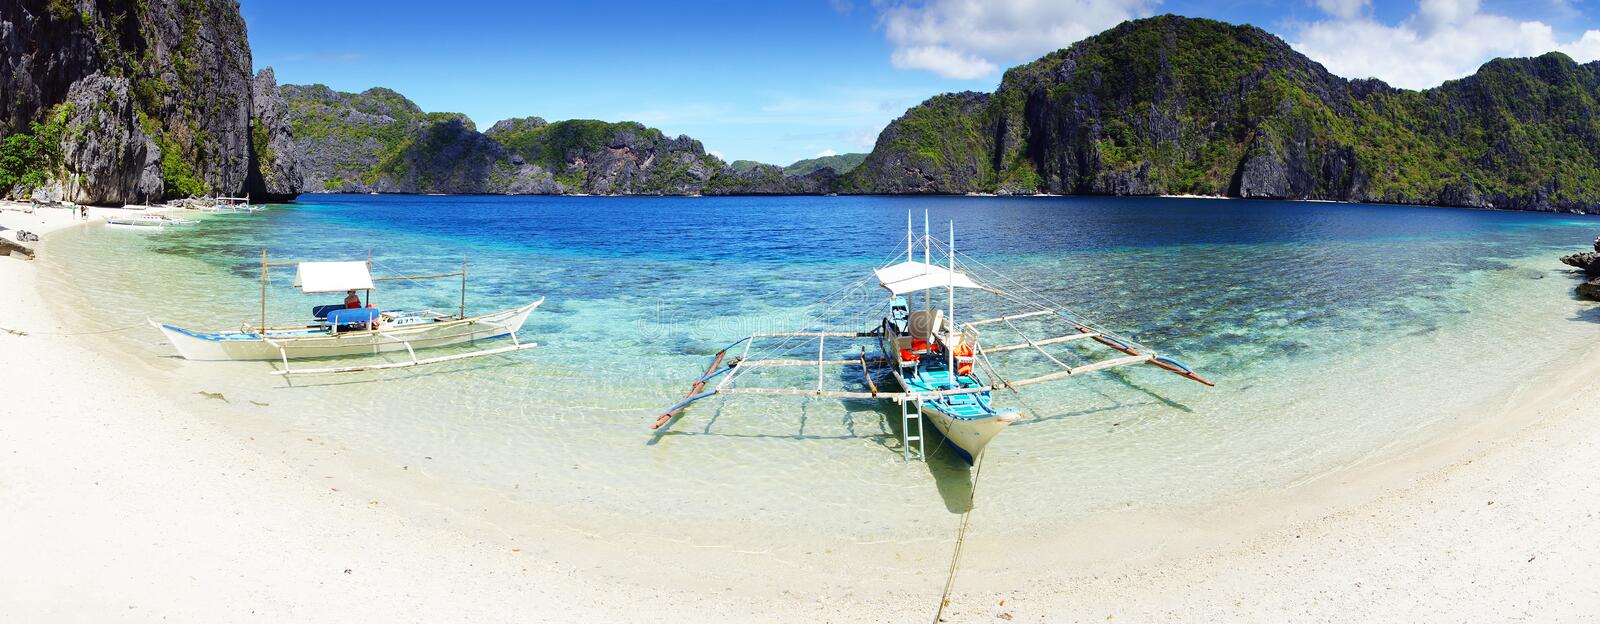 Beach at Island. El Nido, Philippines. Boats on a beach at Island. El Nido, Philippines royalty free stock photography